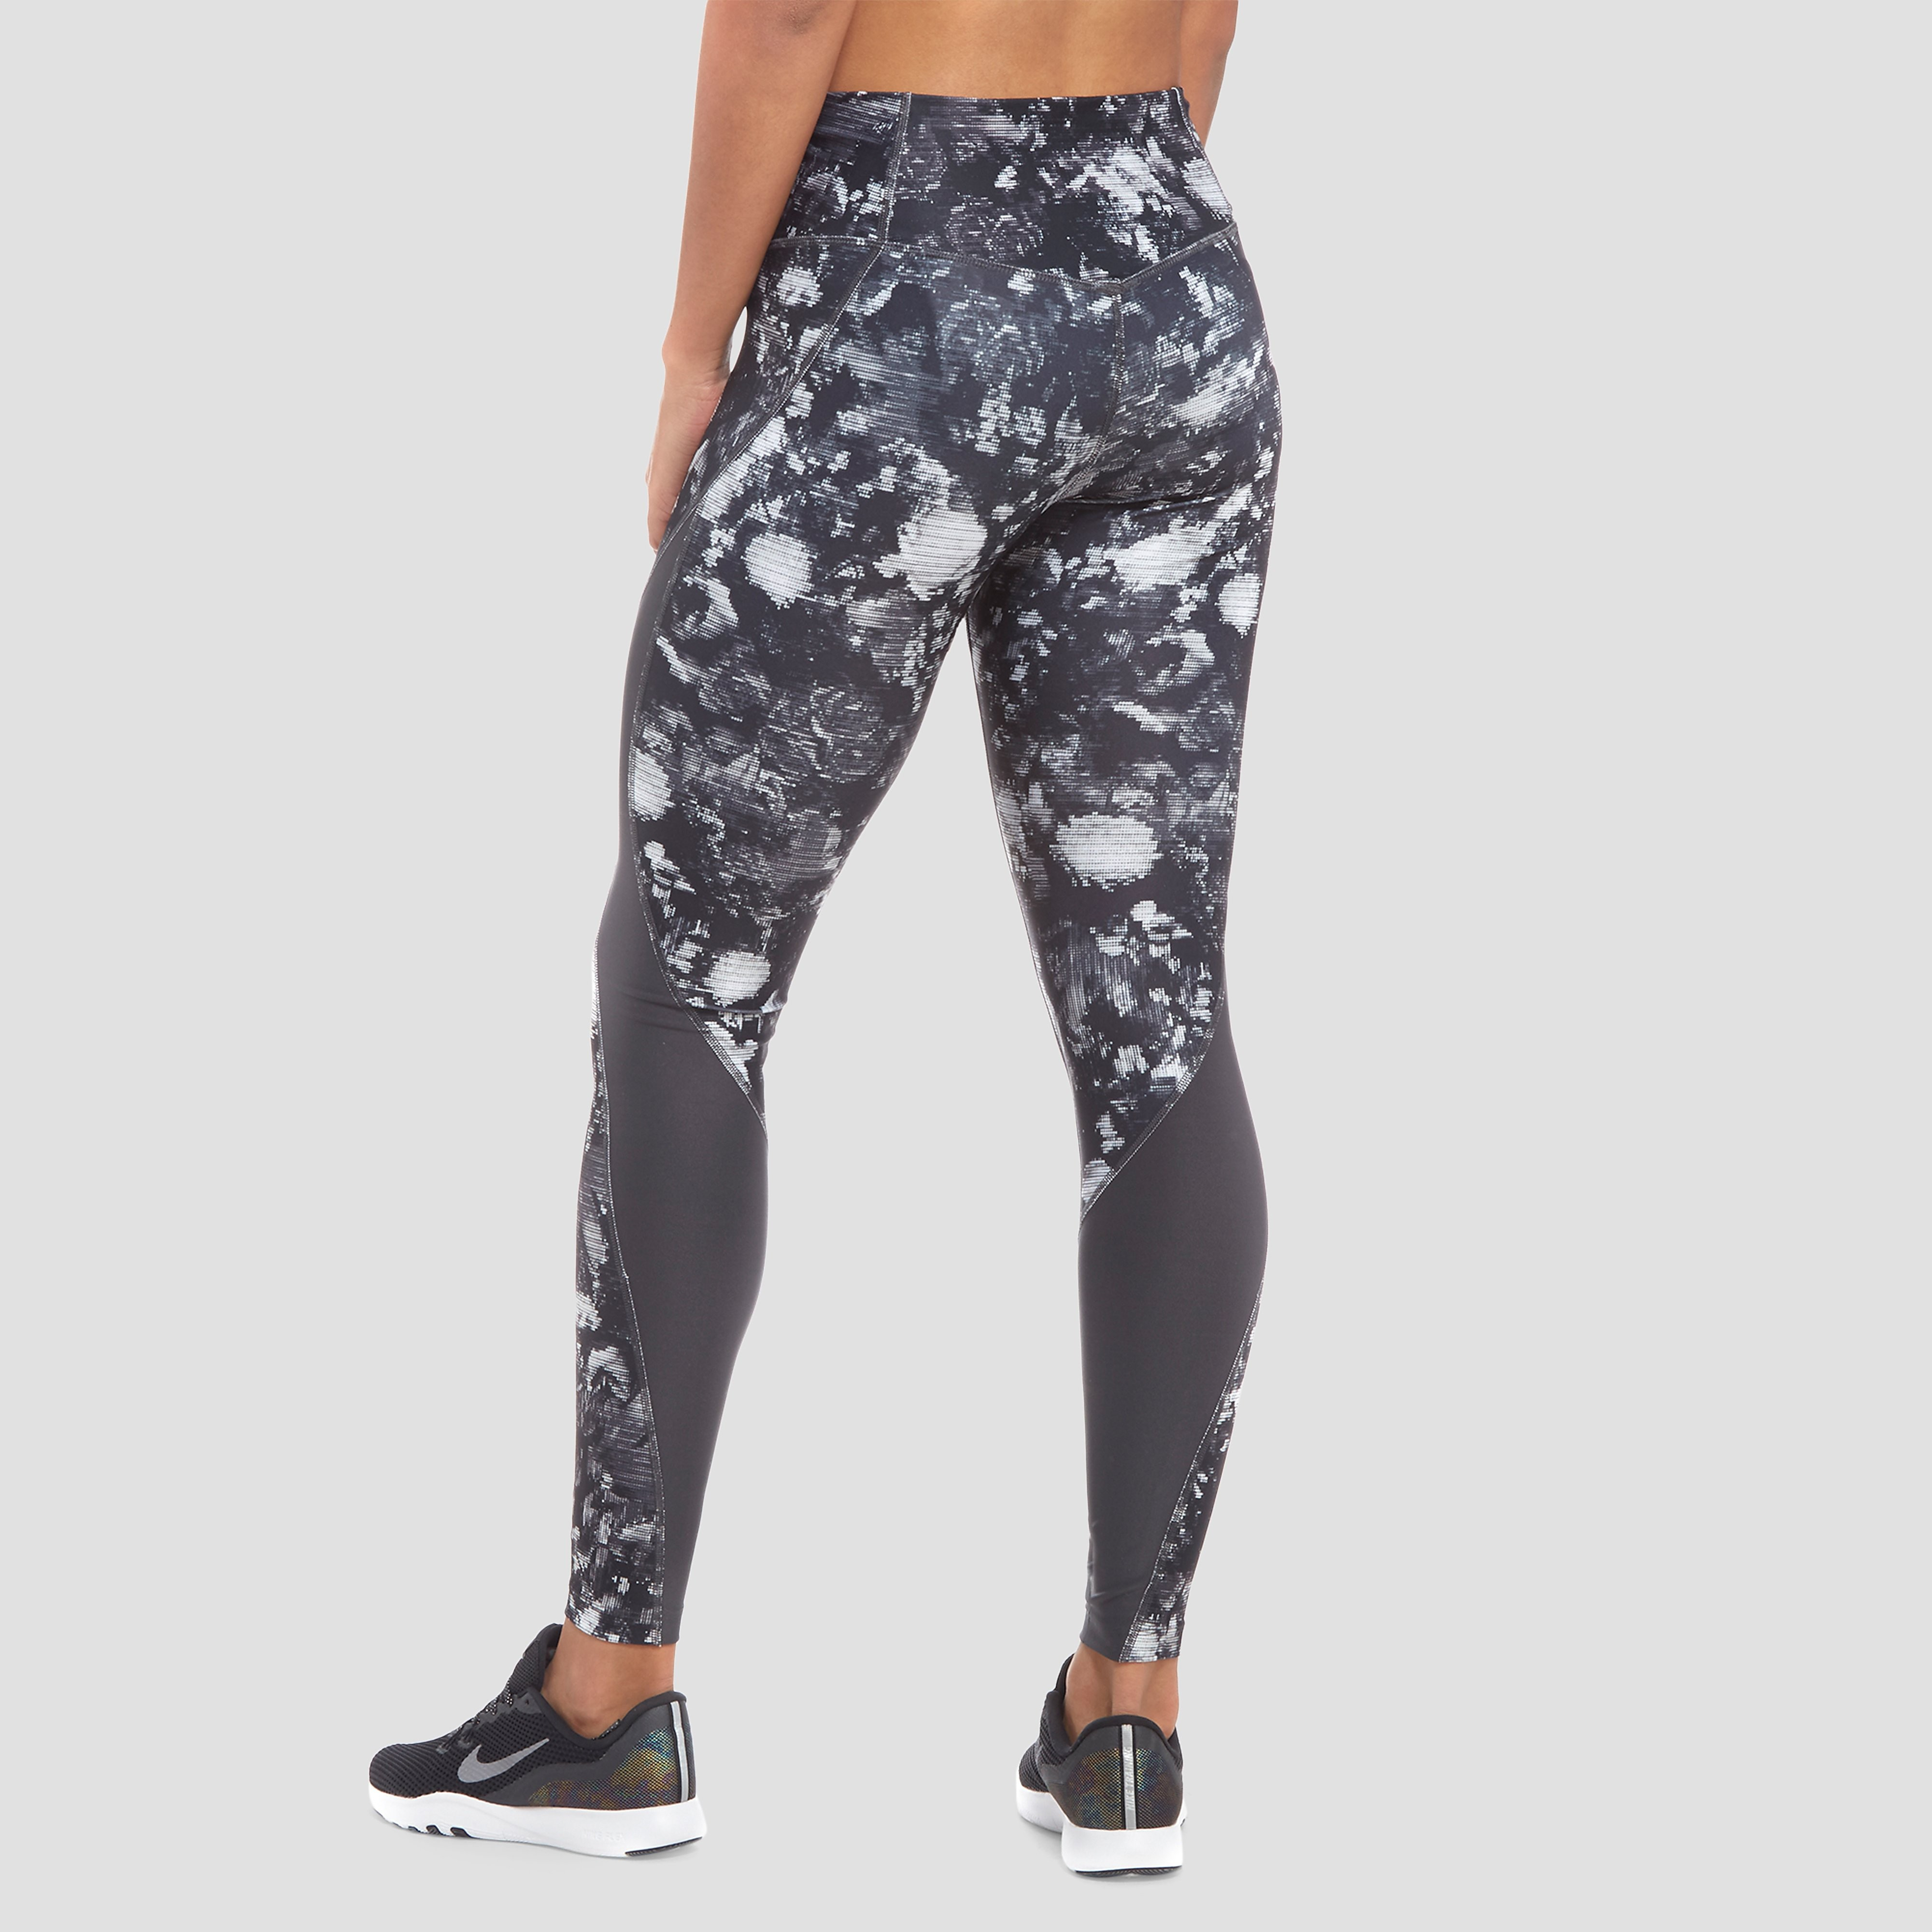 Nike All Over Print Women's Training Tights